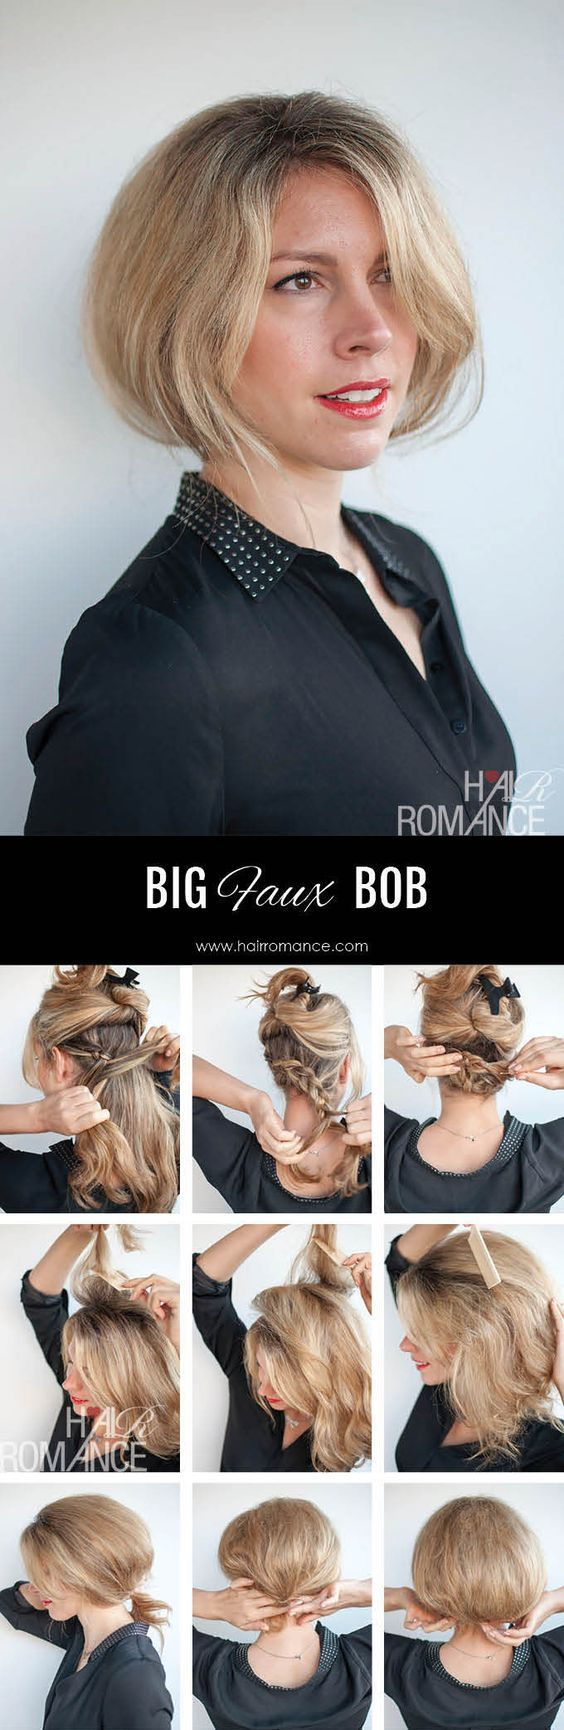 Big faux bob; Get the scoop on these wedding hairstyle tutorial looks from Hair Romance's amazing blog. hairromance.com